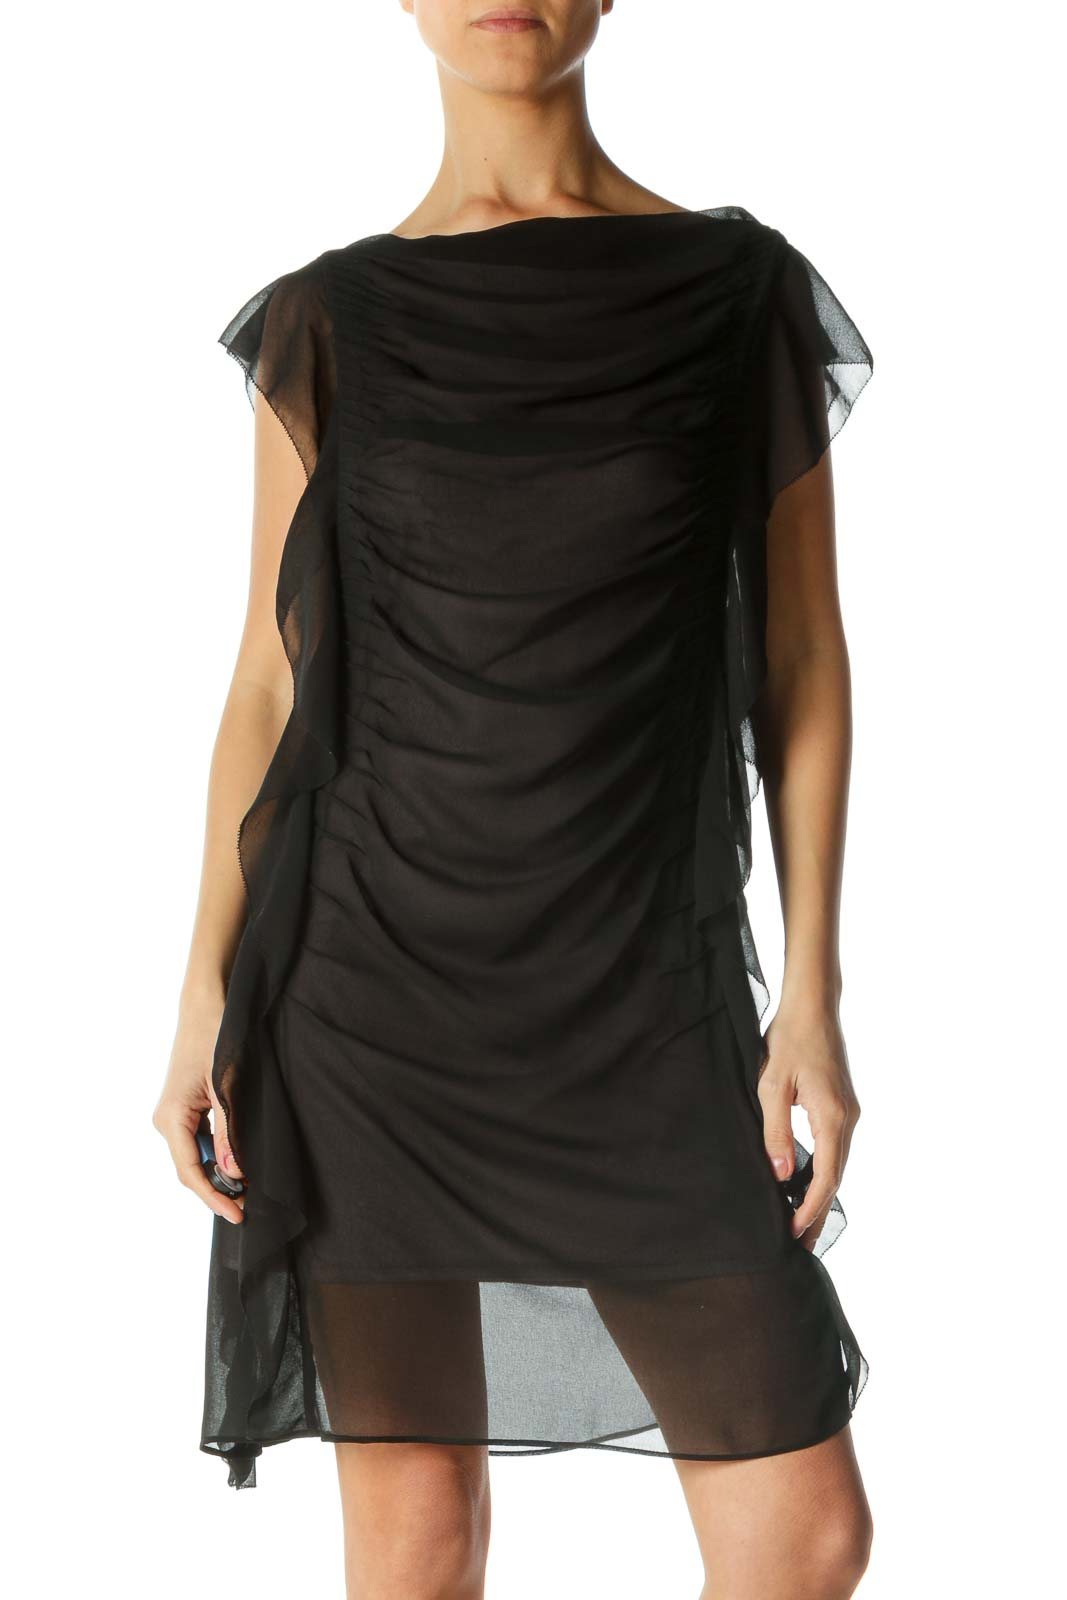 Black and Purple Sheer Ruffled Dress Front